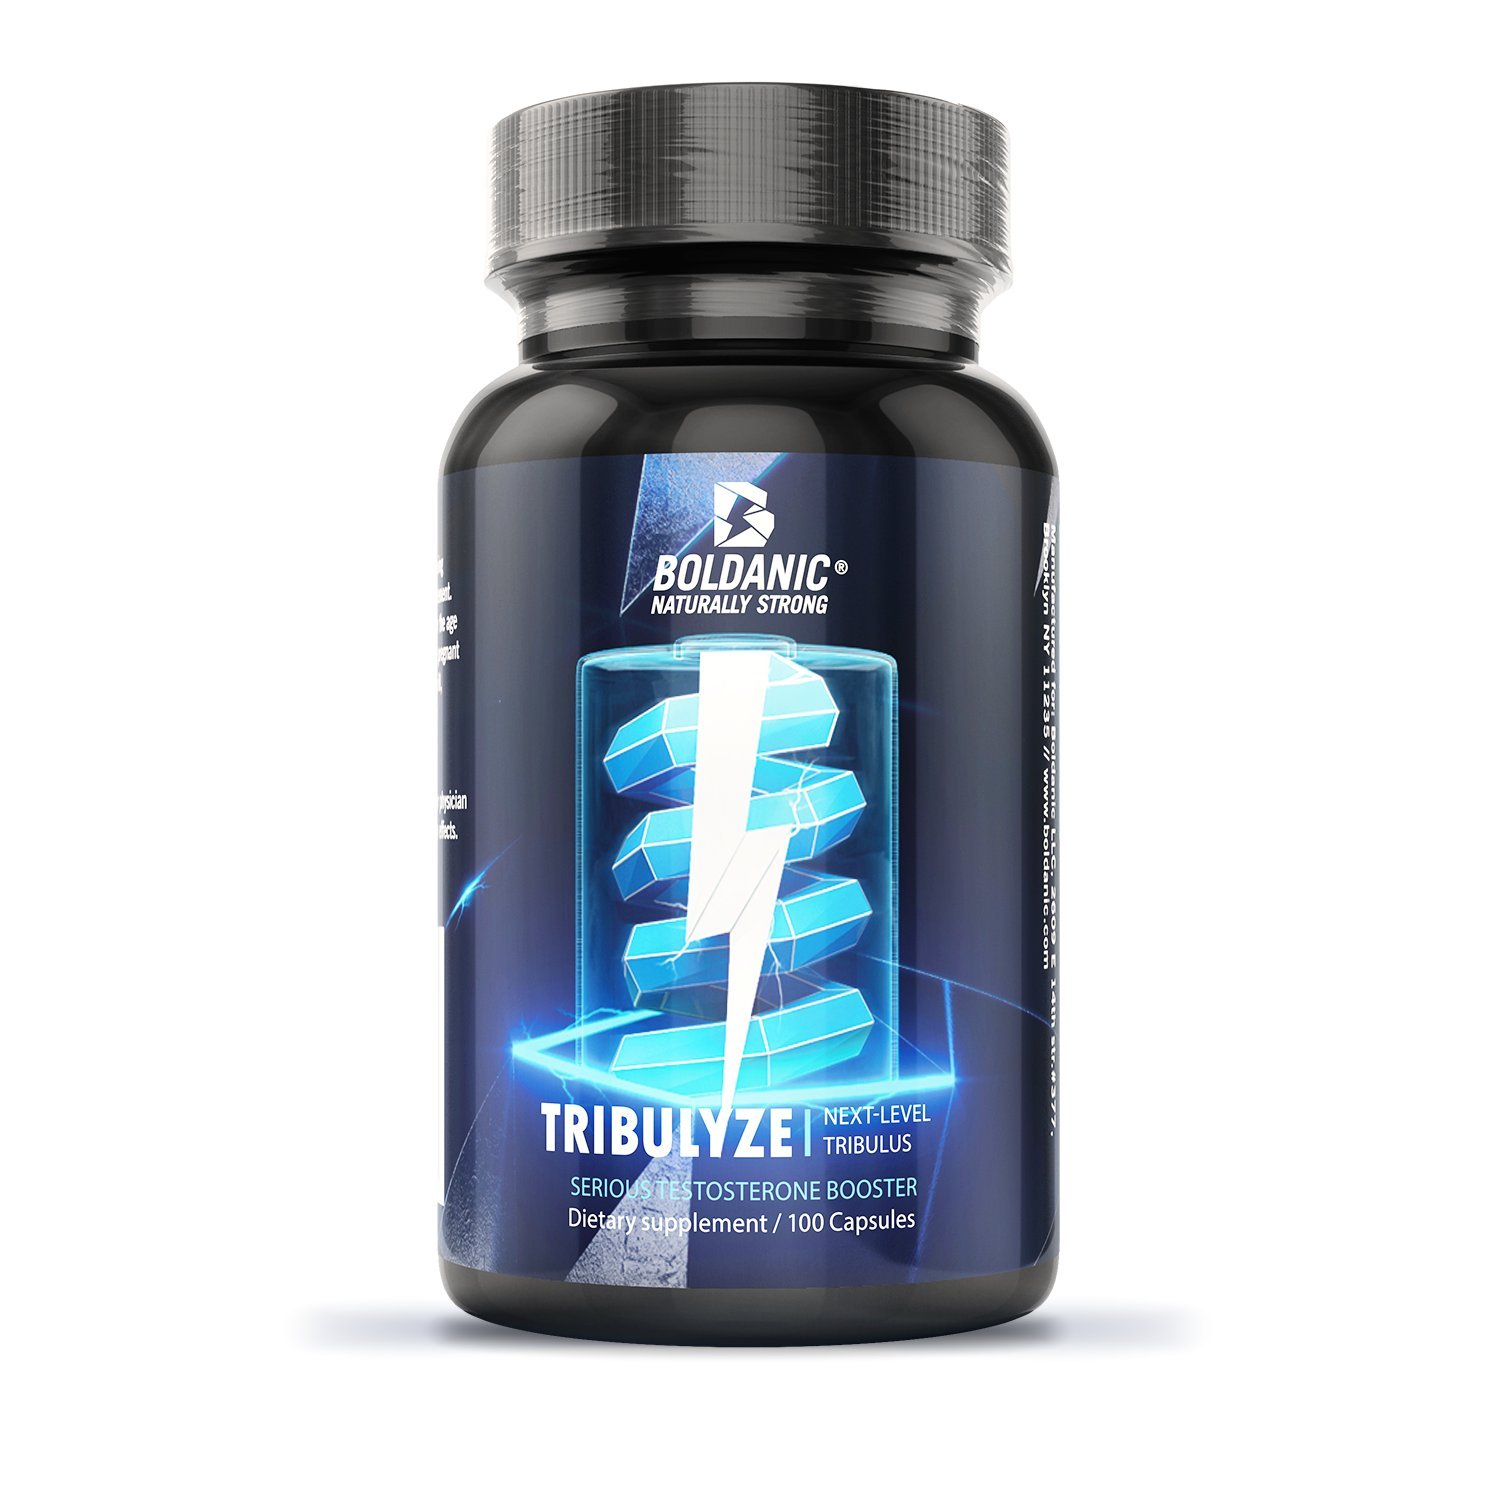 Tribulyze : Next-Level Tribulus Terrestris Extract. May contain upwards of 10x more protodioscin than other brands